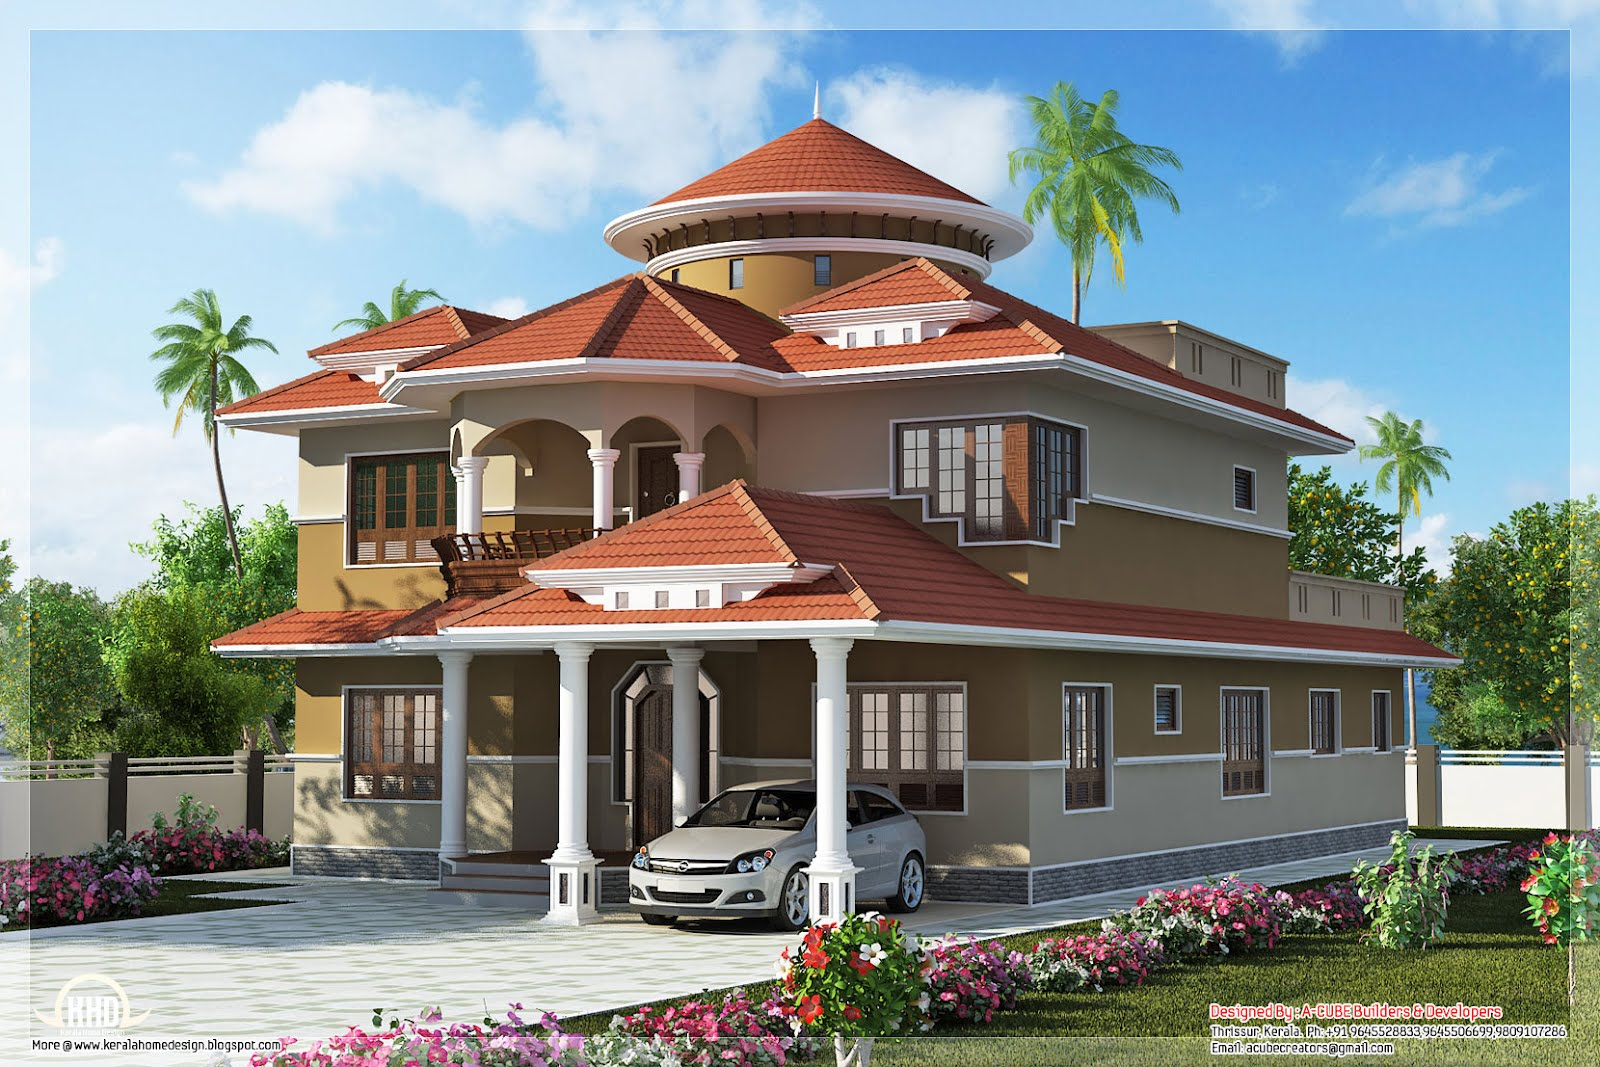 For More Information about this beautiful dream home design